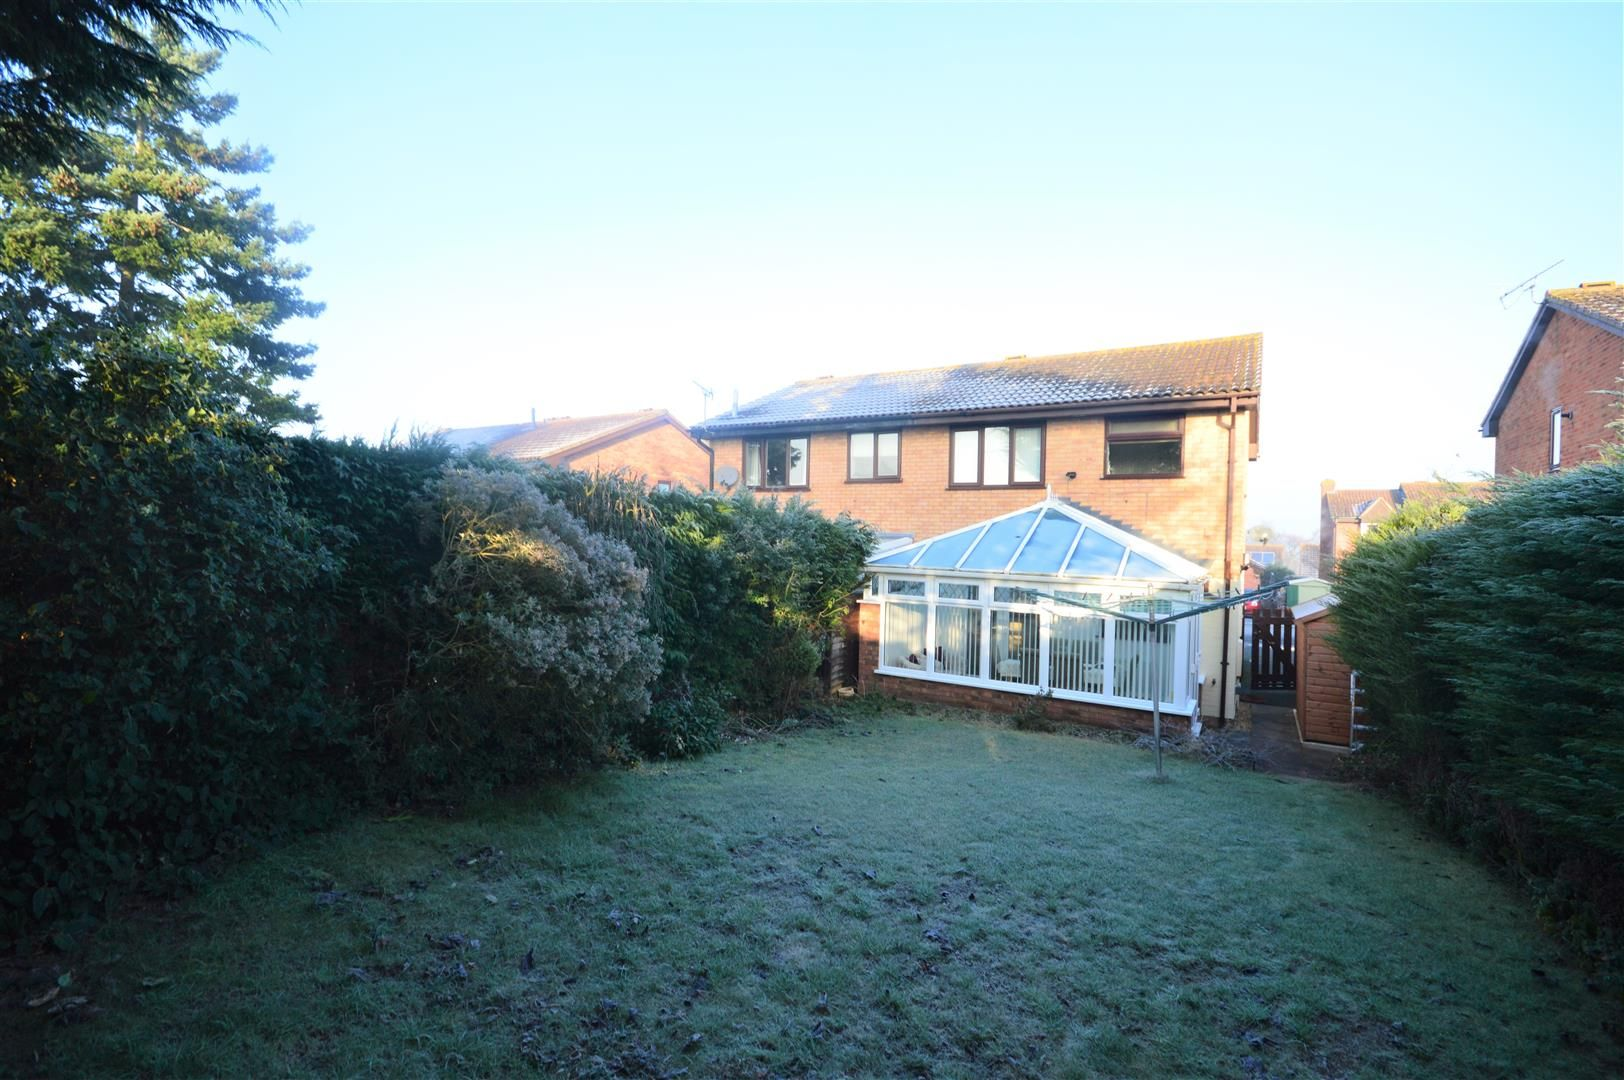 3 bed semi-detached for sale in Leominster  - Property Image 11